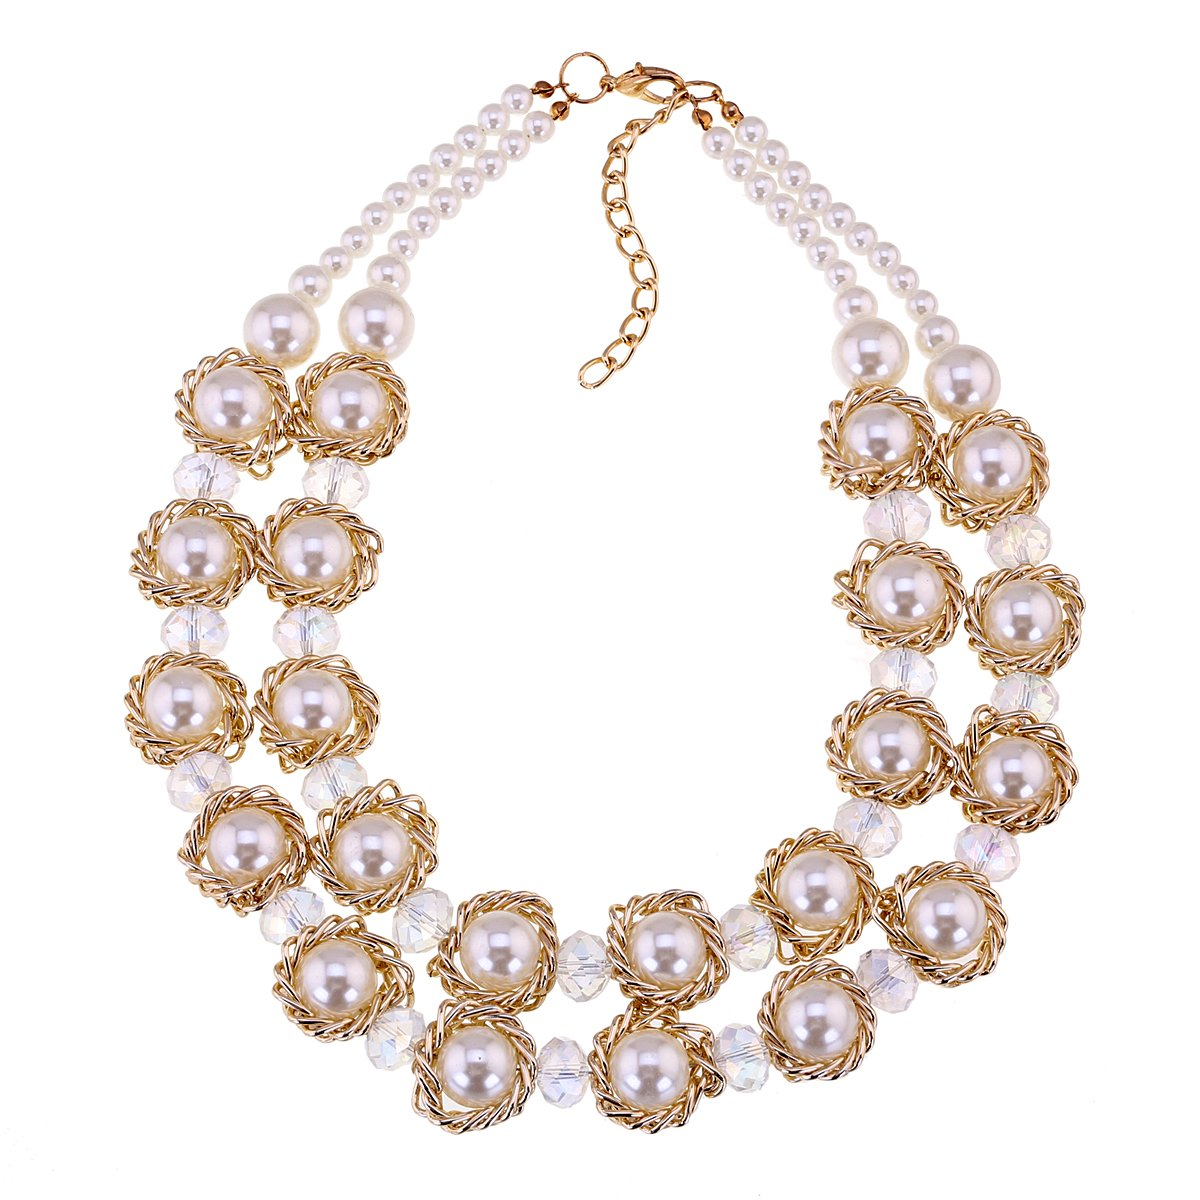 KAYMEN FASHION JEWELLERY Double Layers Strand Crystal Pearl Chokers Necklace for Prom, Women Accessory